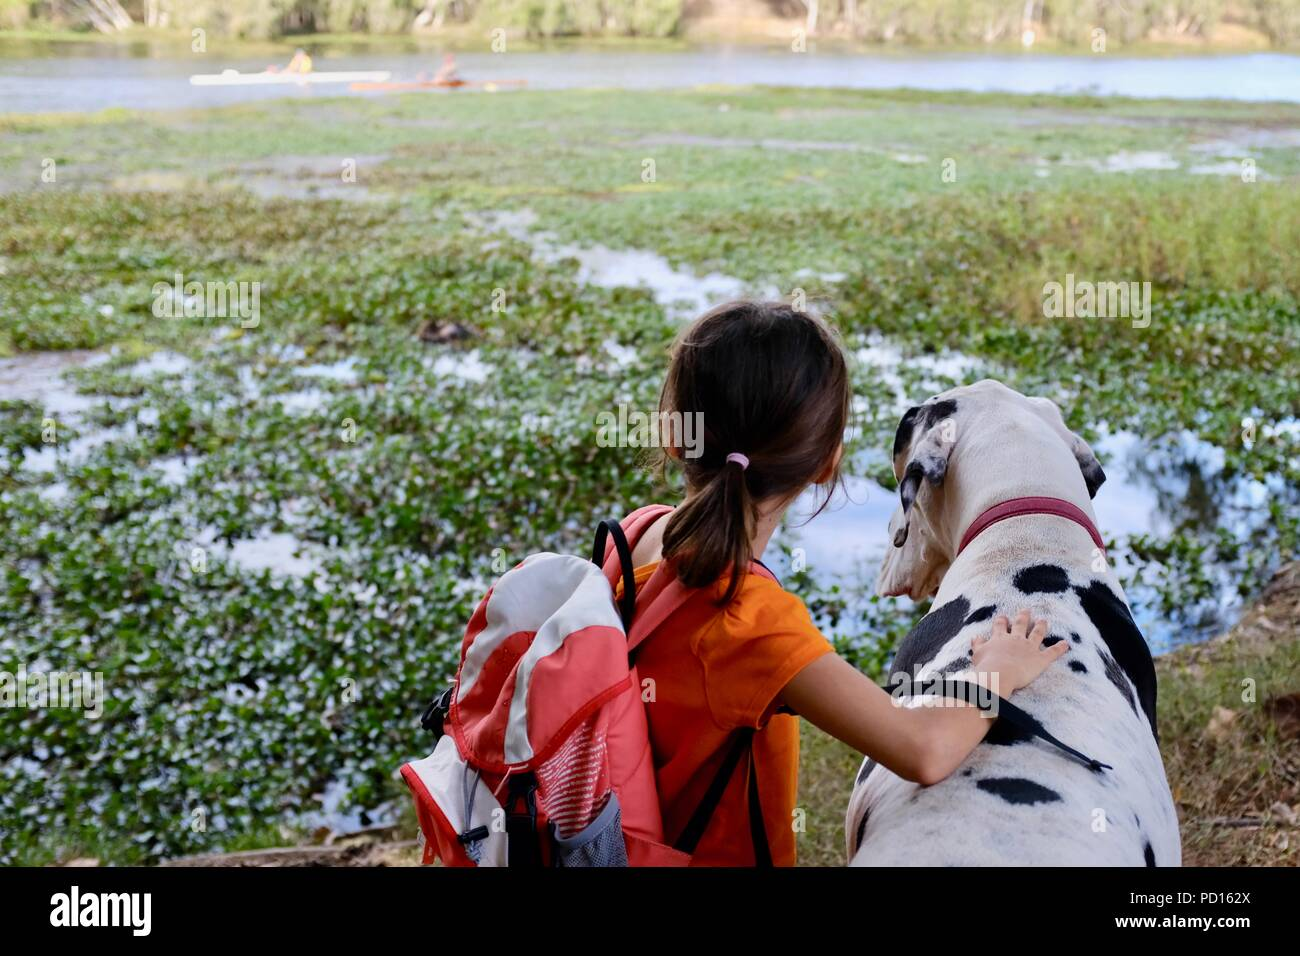 A young girl White and black great dane dog together overlooking a river, Booroona walking trail on the Ross River, Rasmussen QLD 4815, Australia - Stock Image